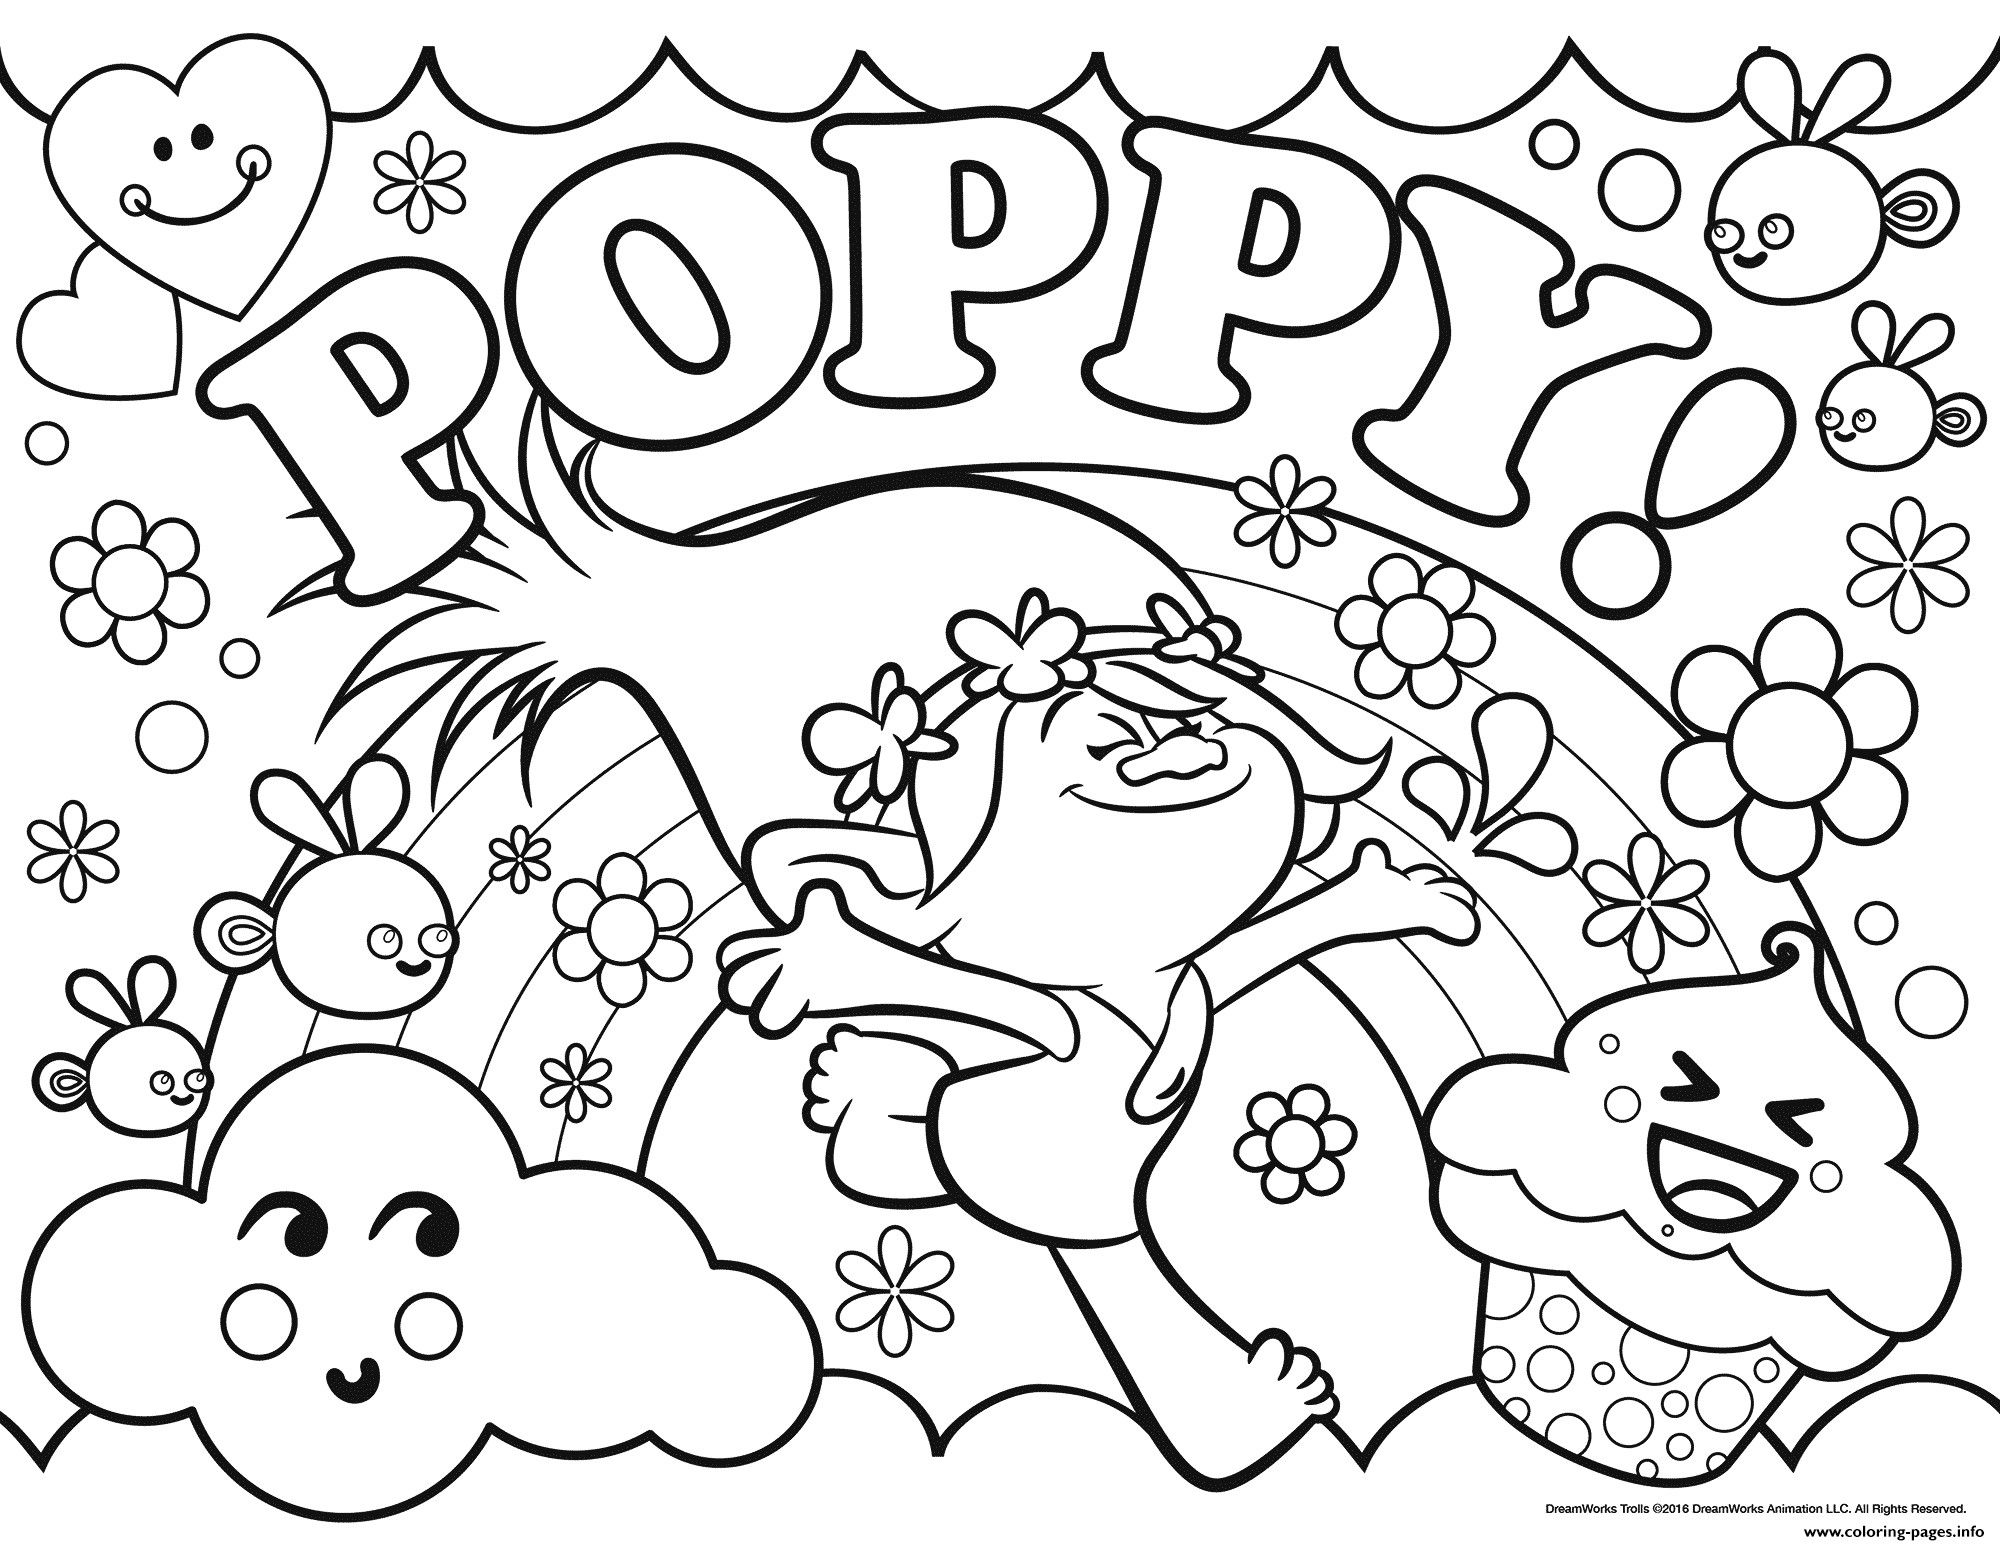 Trolls Coloring Pages Pdf Through The Thousand Photographs On The Net In Relation To Trolls Colorin Poppy Coloring Page Cartoon Coloring Pages Coloring Books